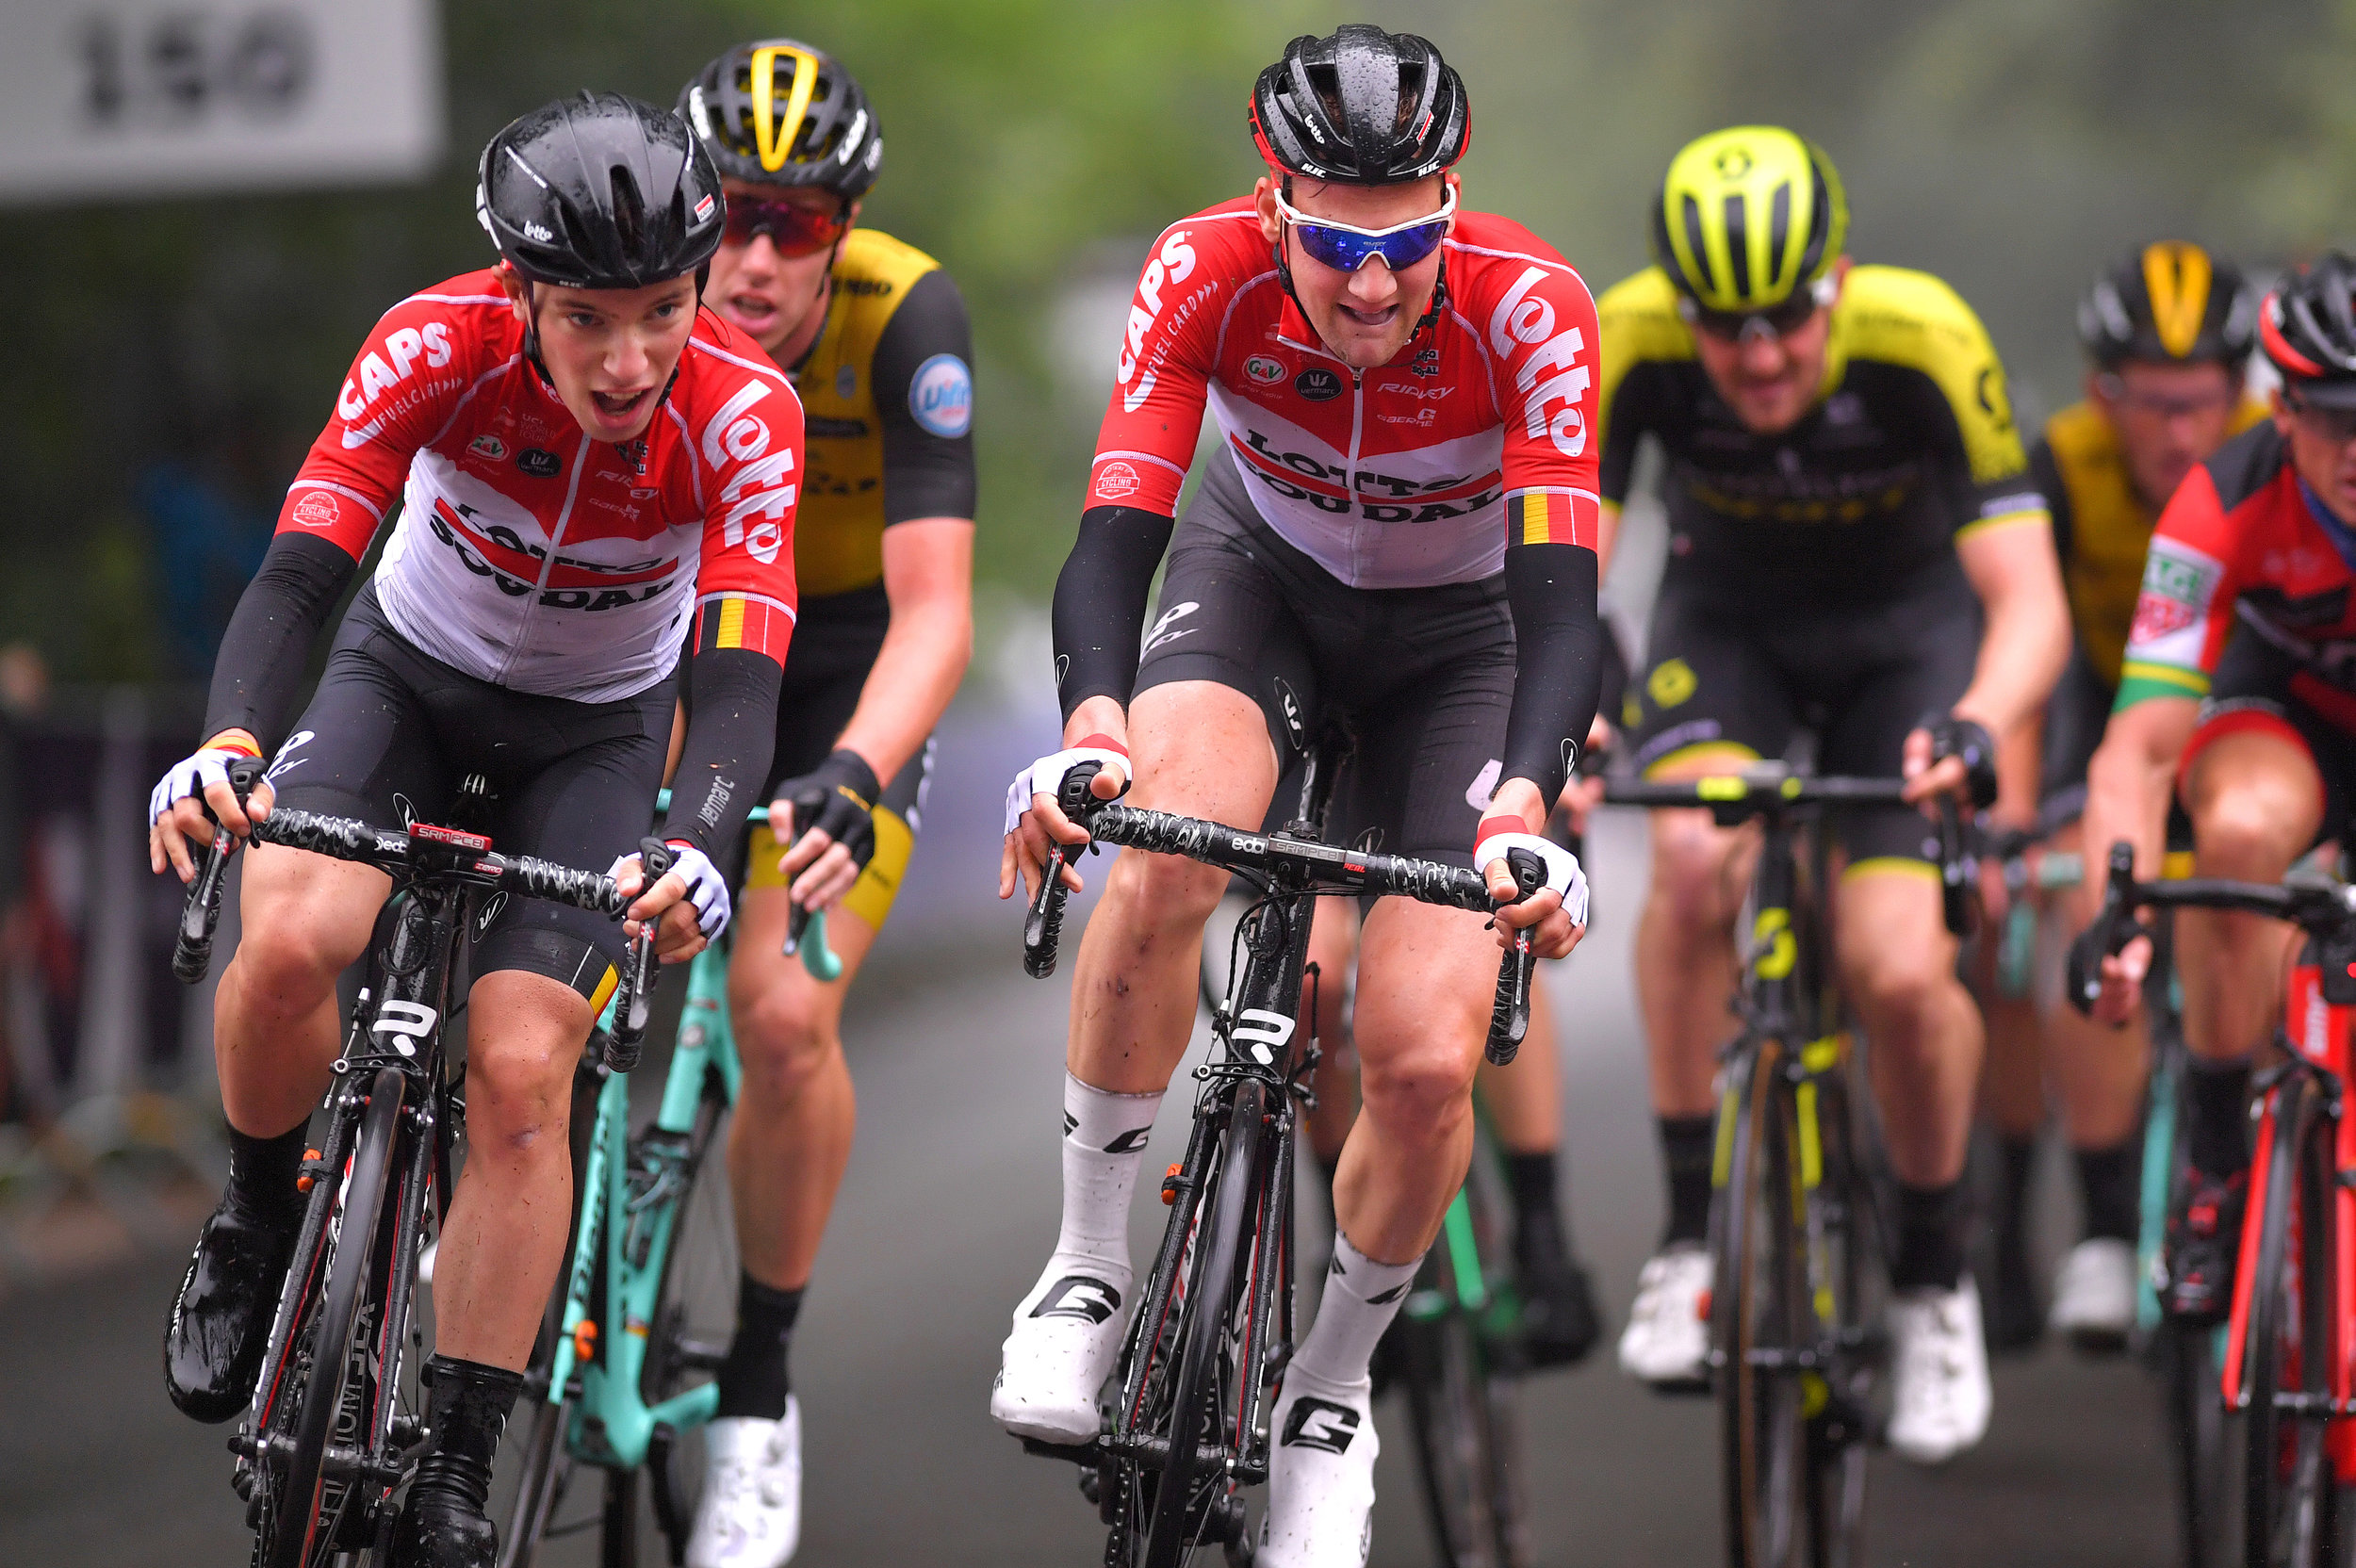 Tim Wellens, centre, with Bjorg Lambrecht at Hammer Limburg in 2018 (Getty Images)